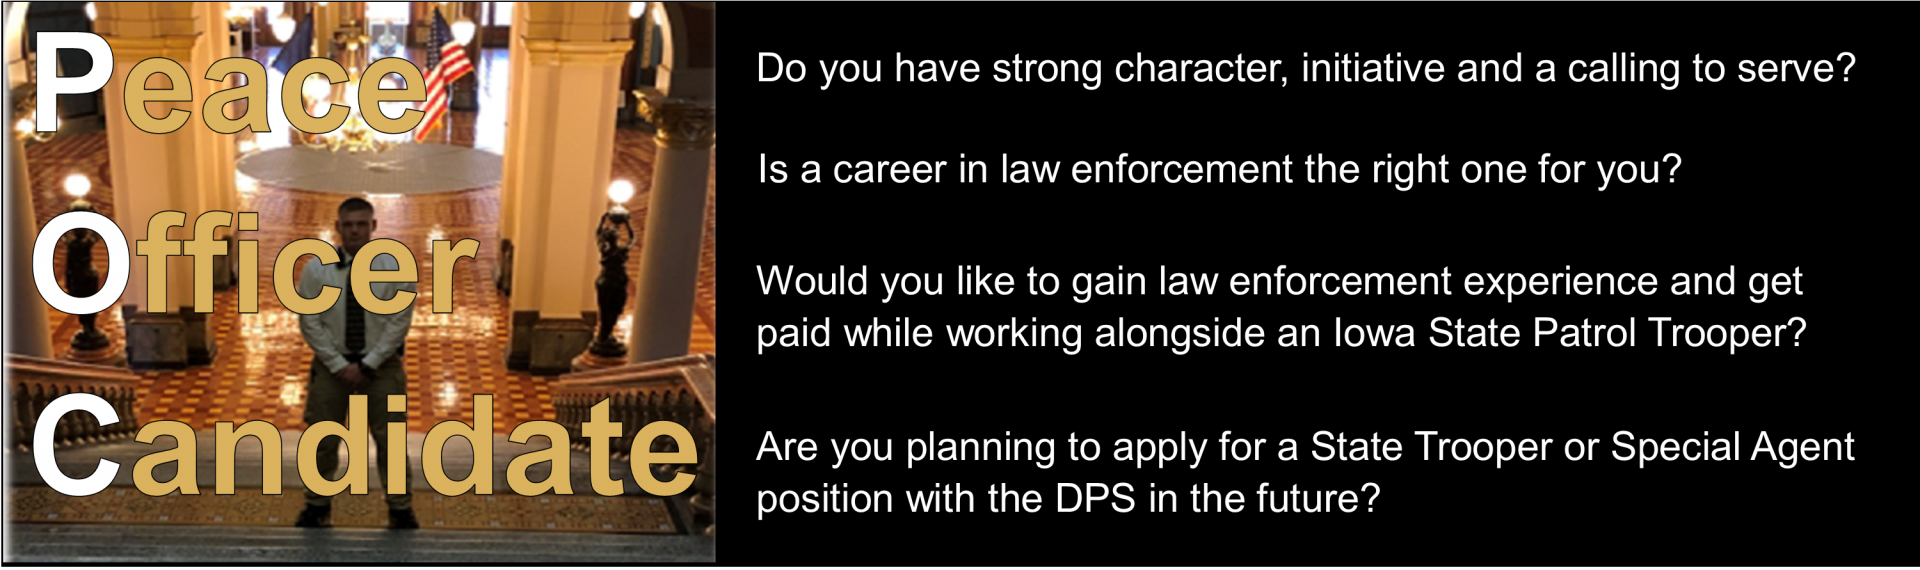 banner for Peace Officer Candidate position